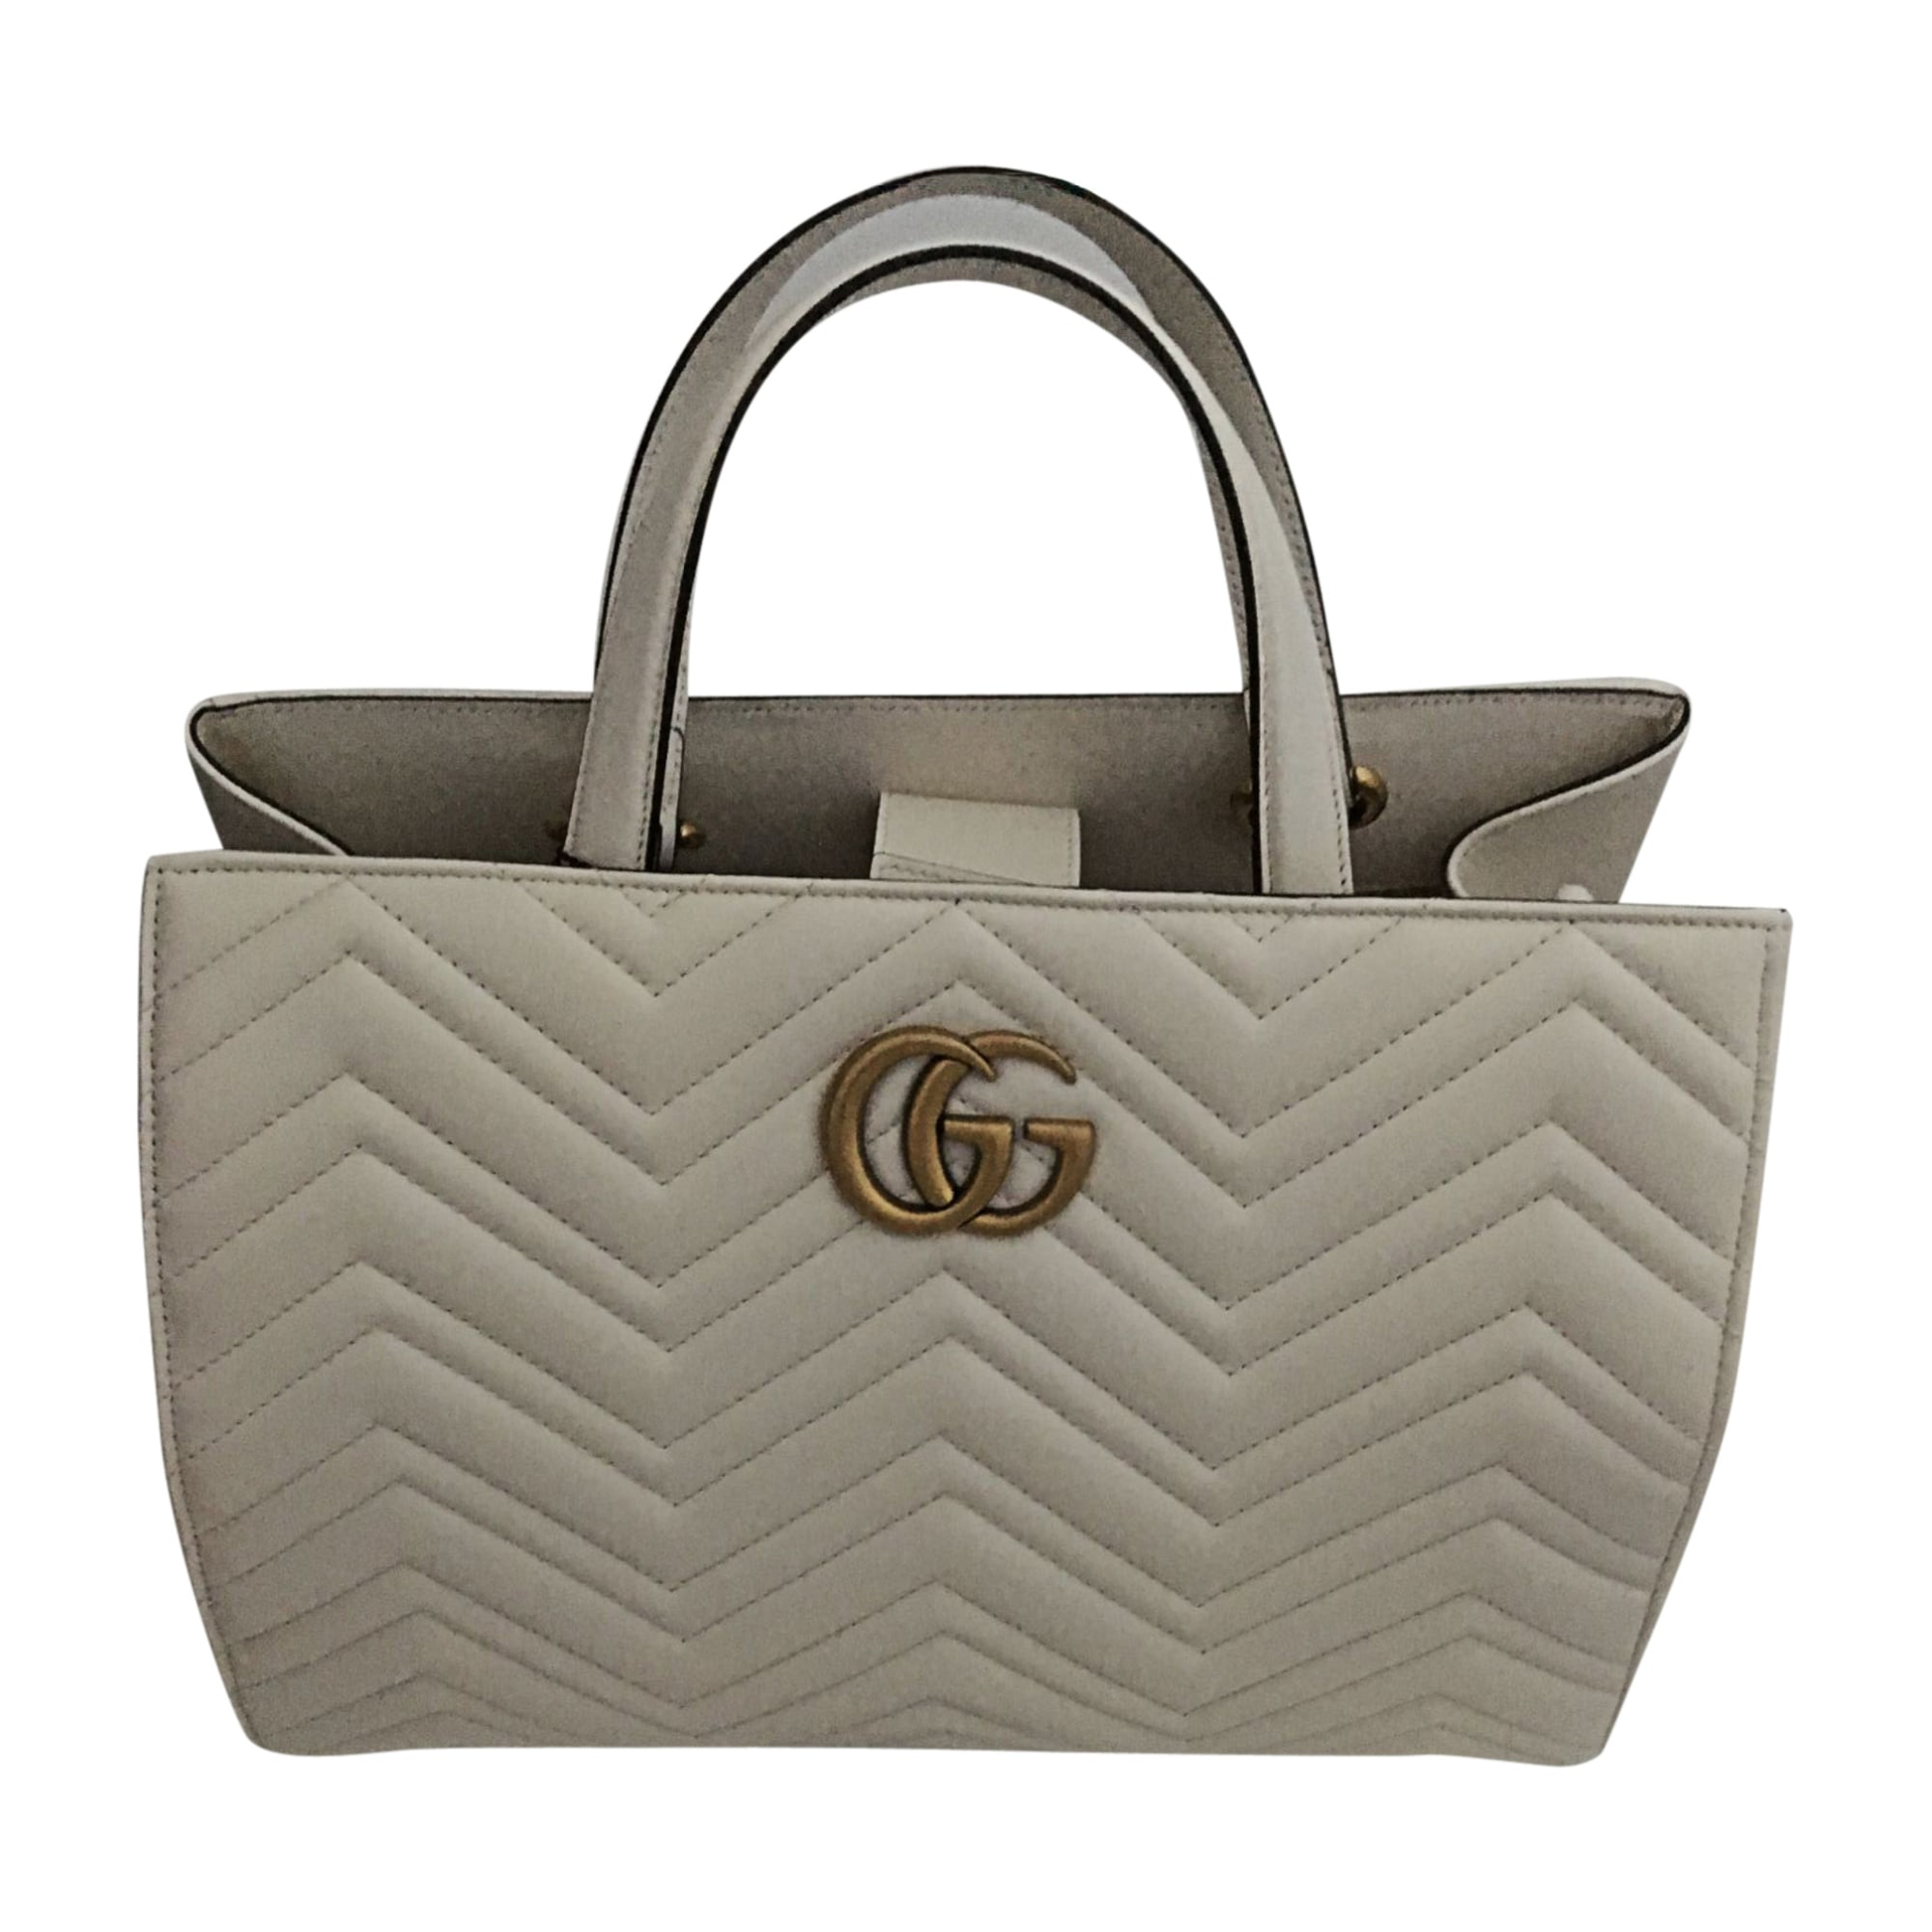 Leather Handbag GUCCI Marmont White, off-white, ecru